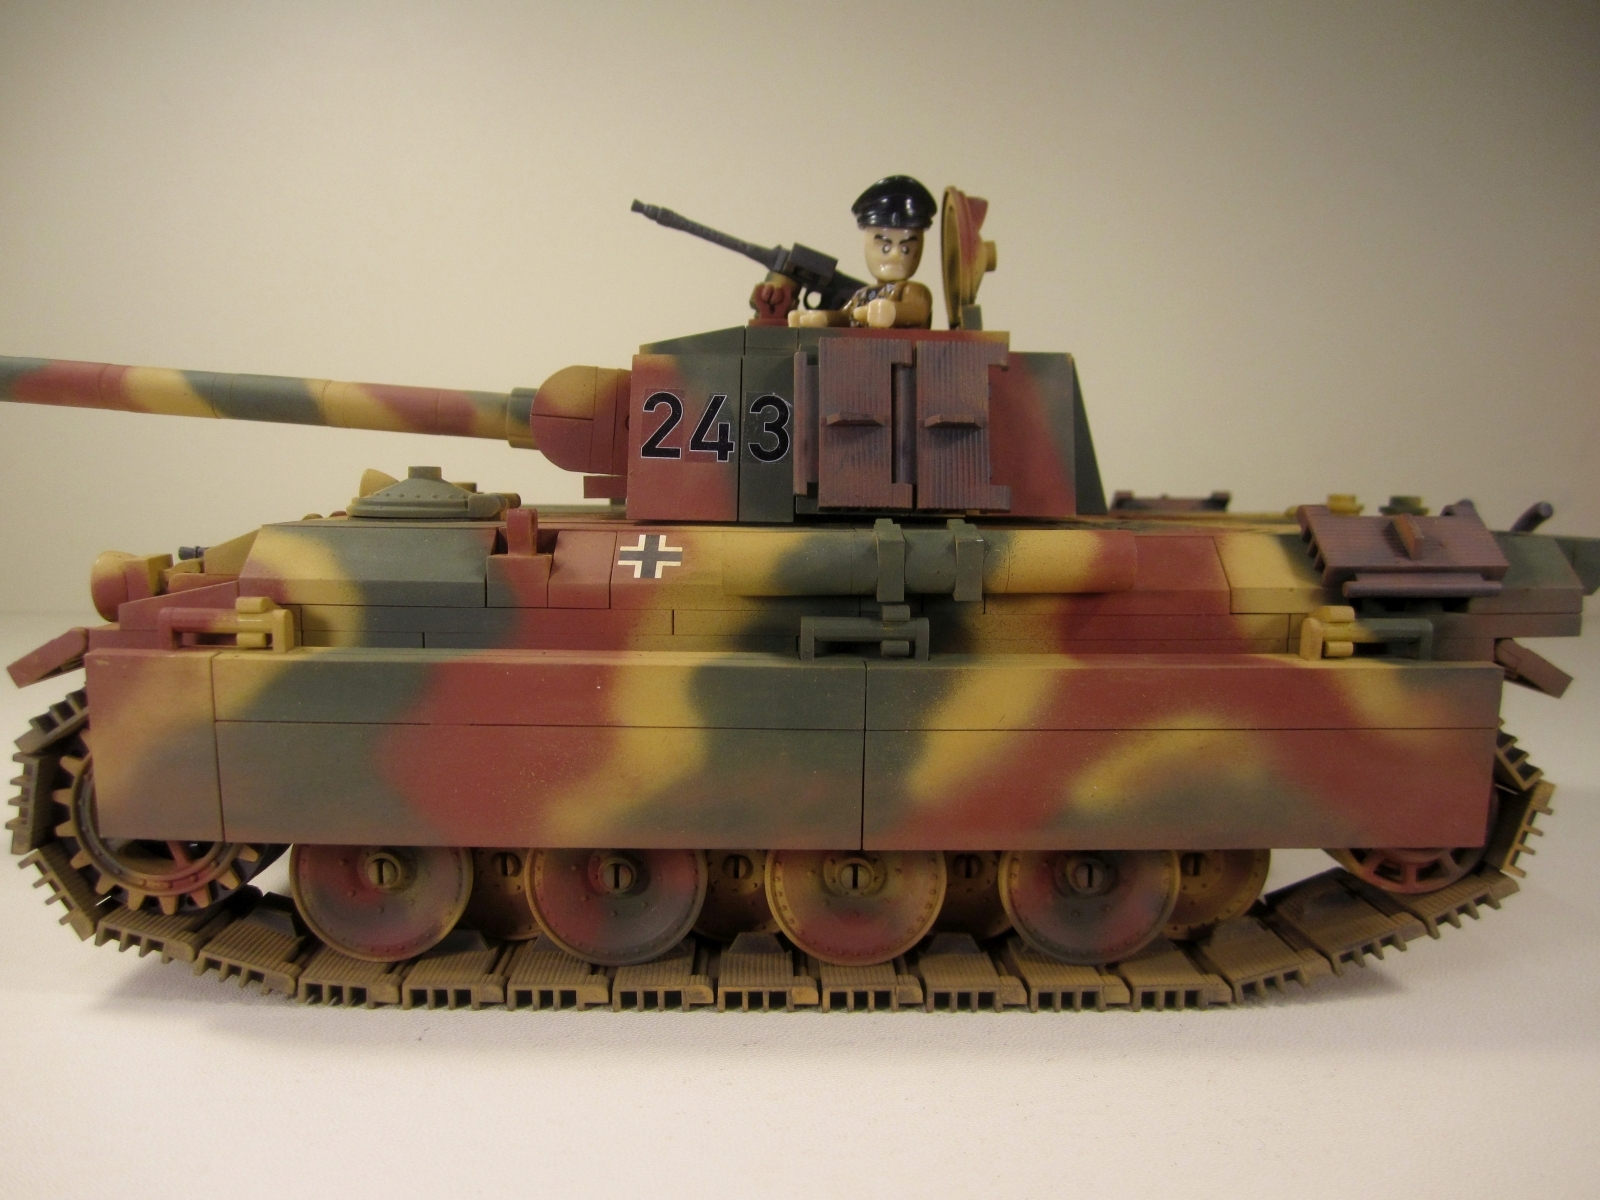 Cobi_3012_WOT_PzKpfw_V_Panther_www.super-bricks.de_camouflage_paint_Small_Army_Tarnung_17